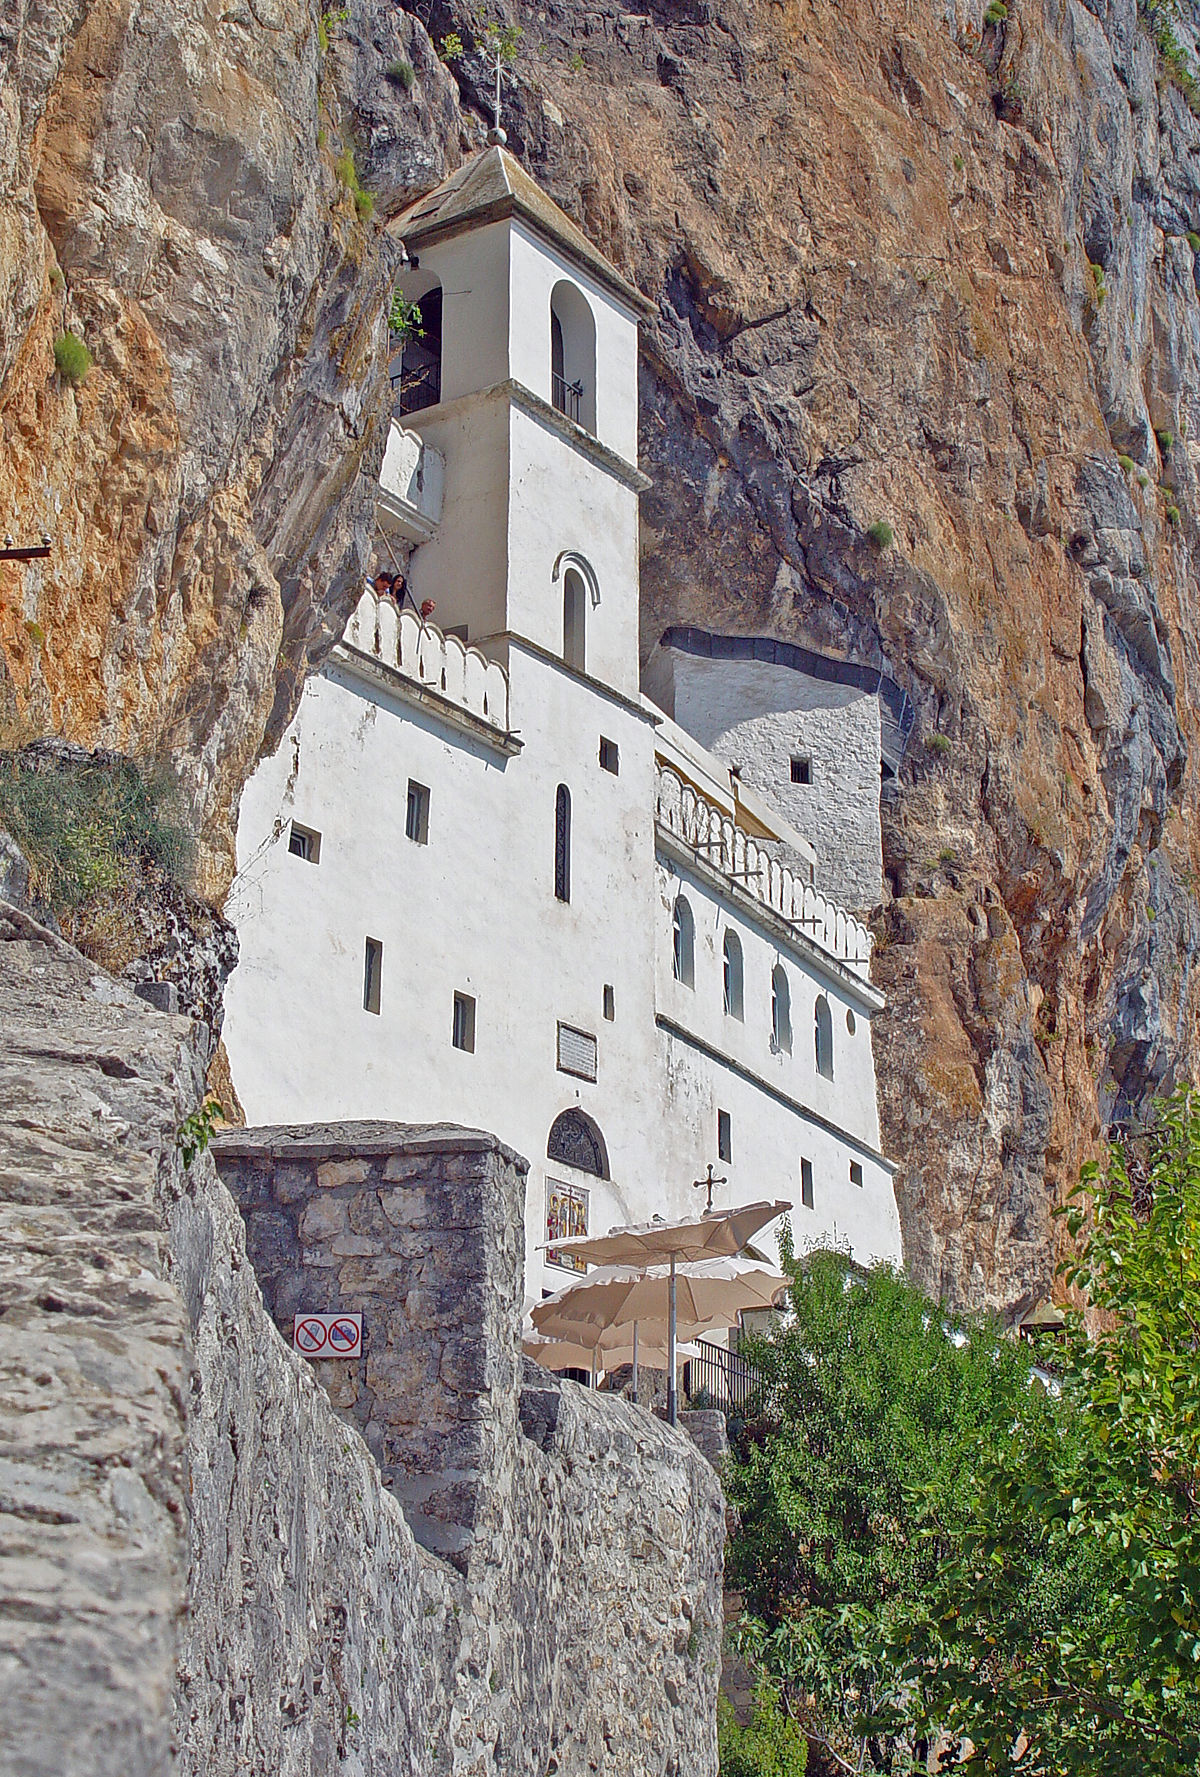 Car To Go >> Mount Ostrog – Travel guide at Wikivoyage